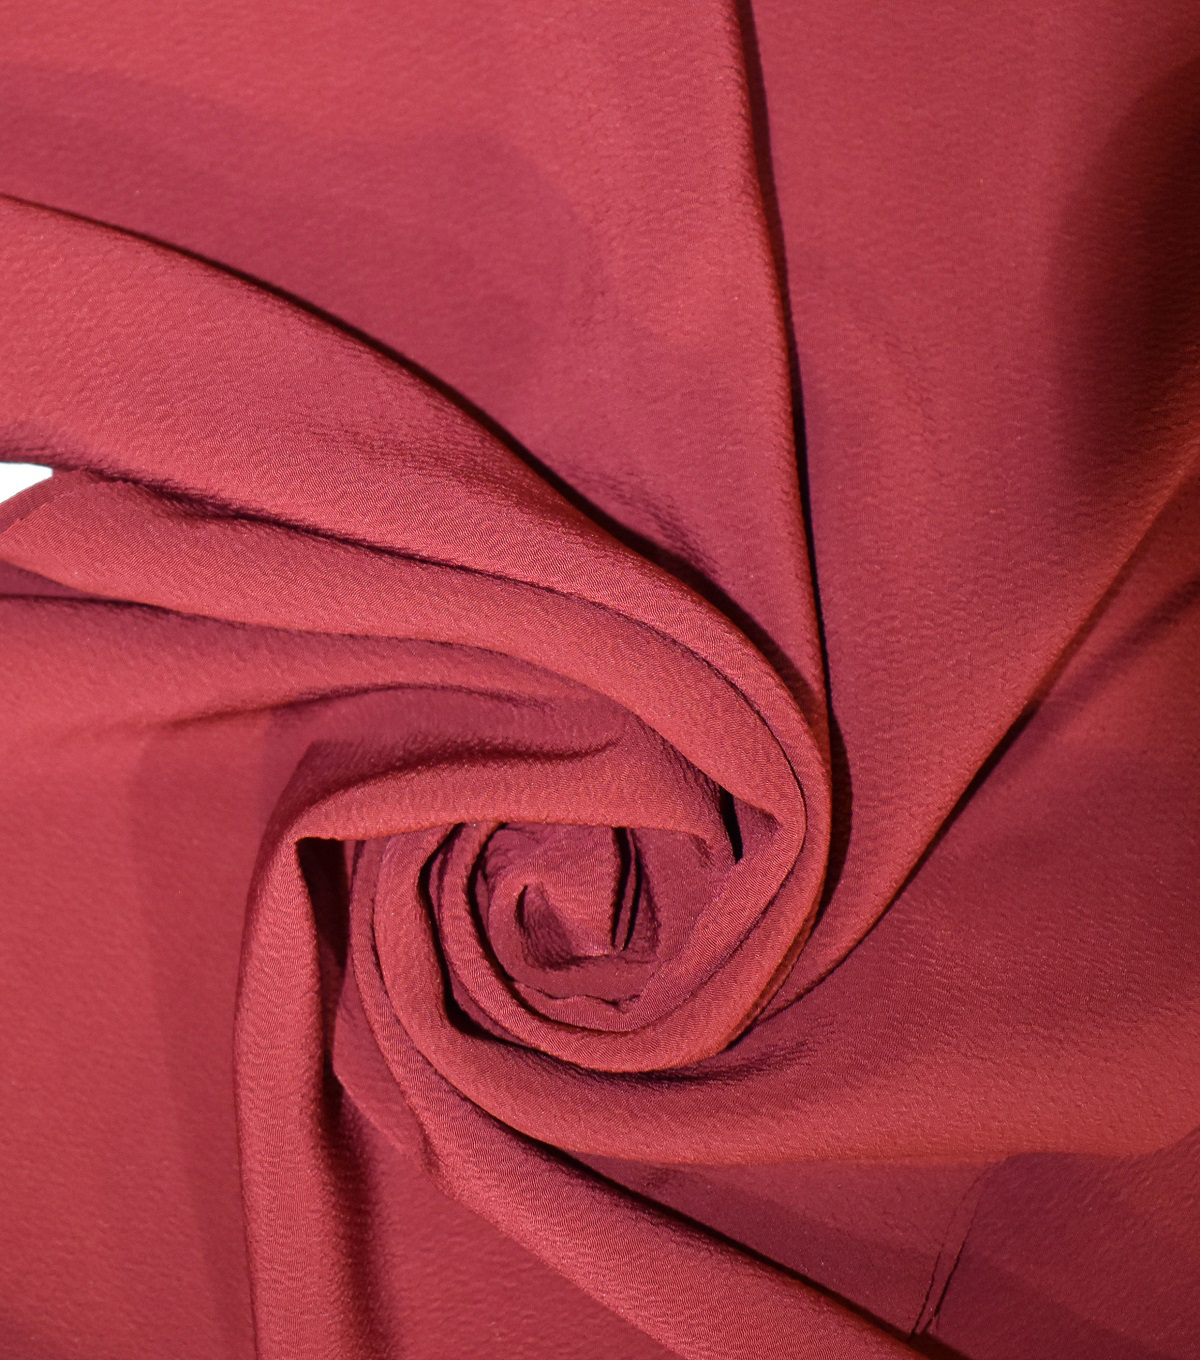 Silky Solids Textured Polyester Crepe Fabric-Solids, Pomegranate